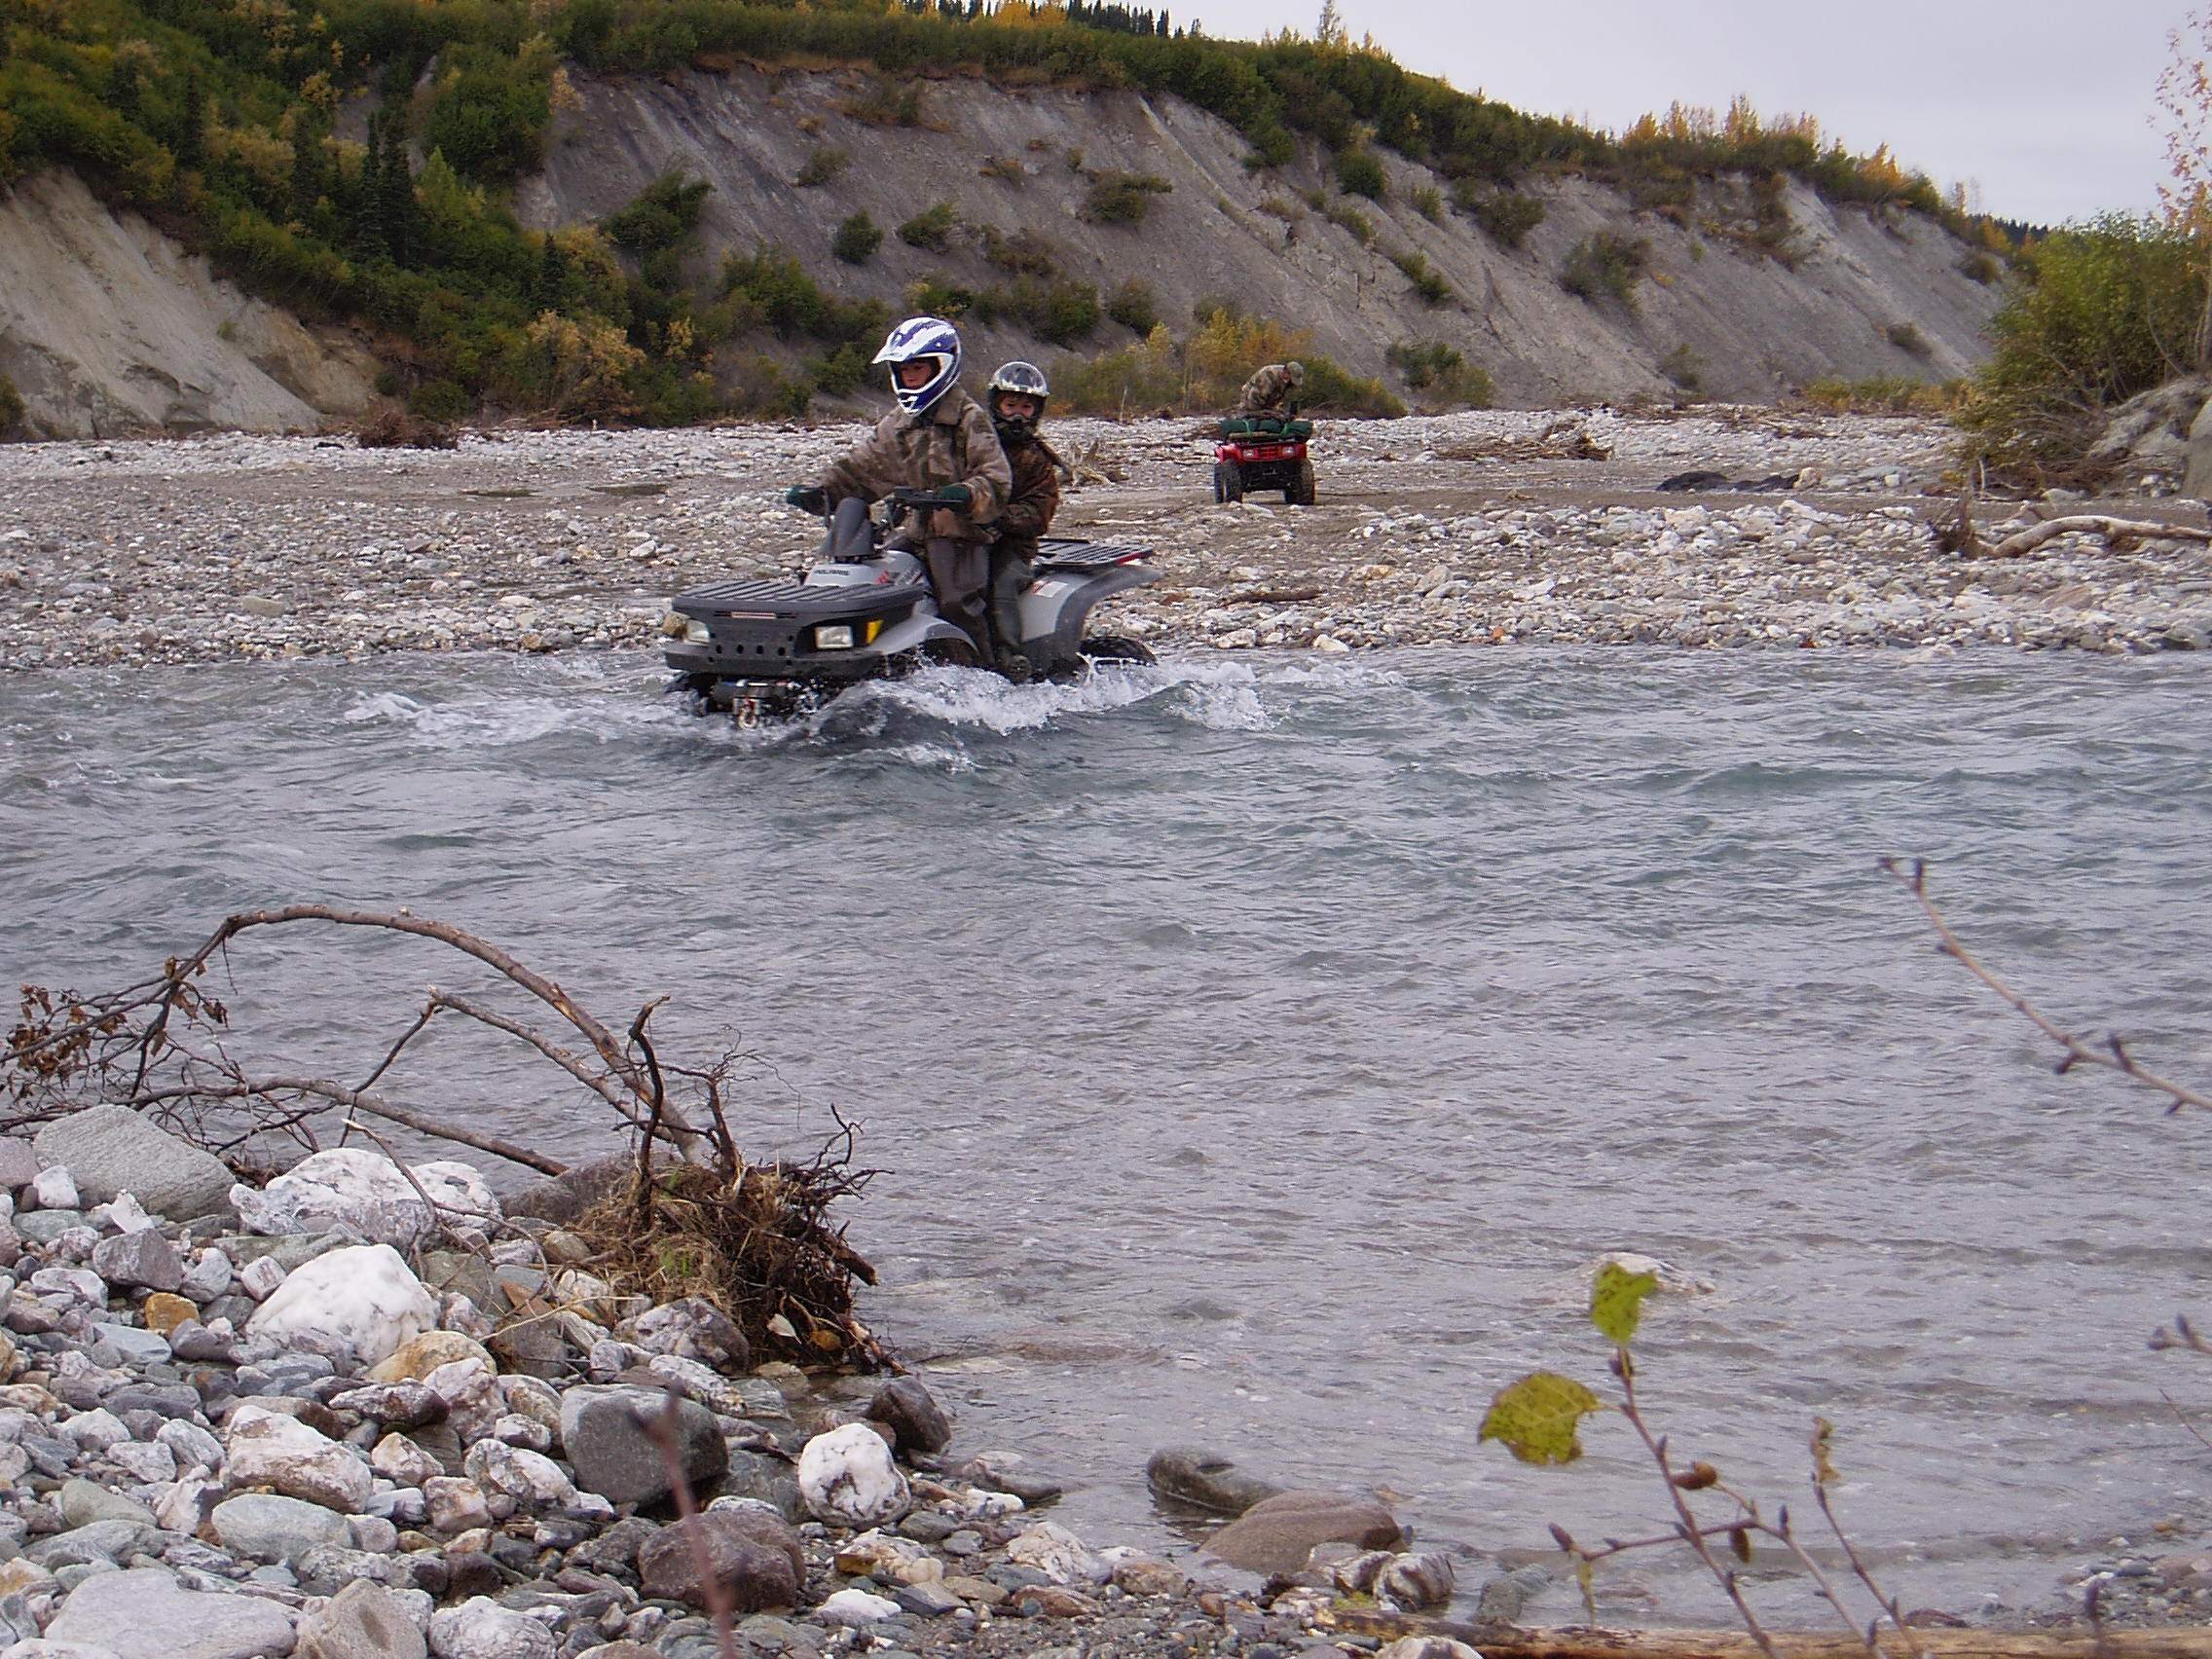 Jared and Nathan riding double on a normal creek crossing. Sagen is in the background.